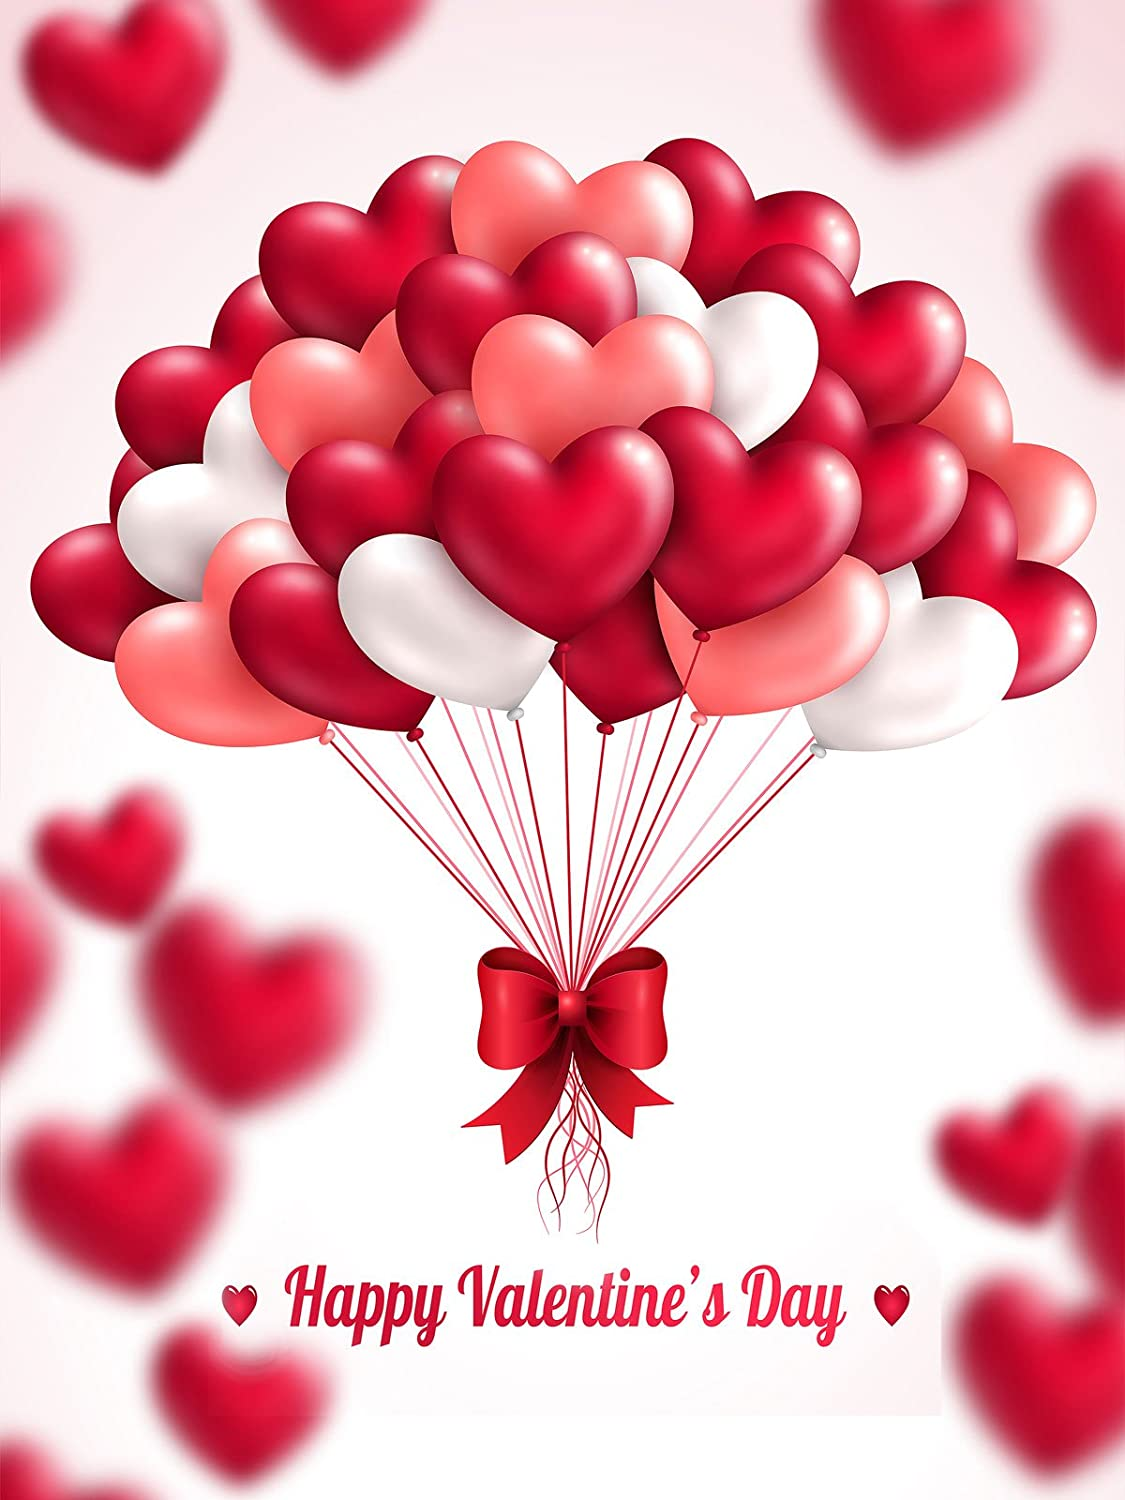 amazoncom 5x7ft red valentines day backdrops photography pink white heart balloon photo studio background camera photo - Valentines Backdrops